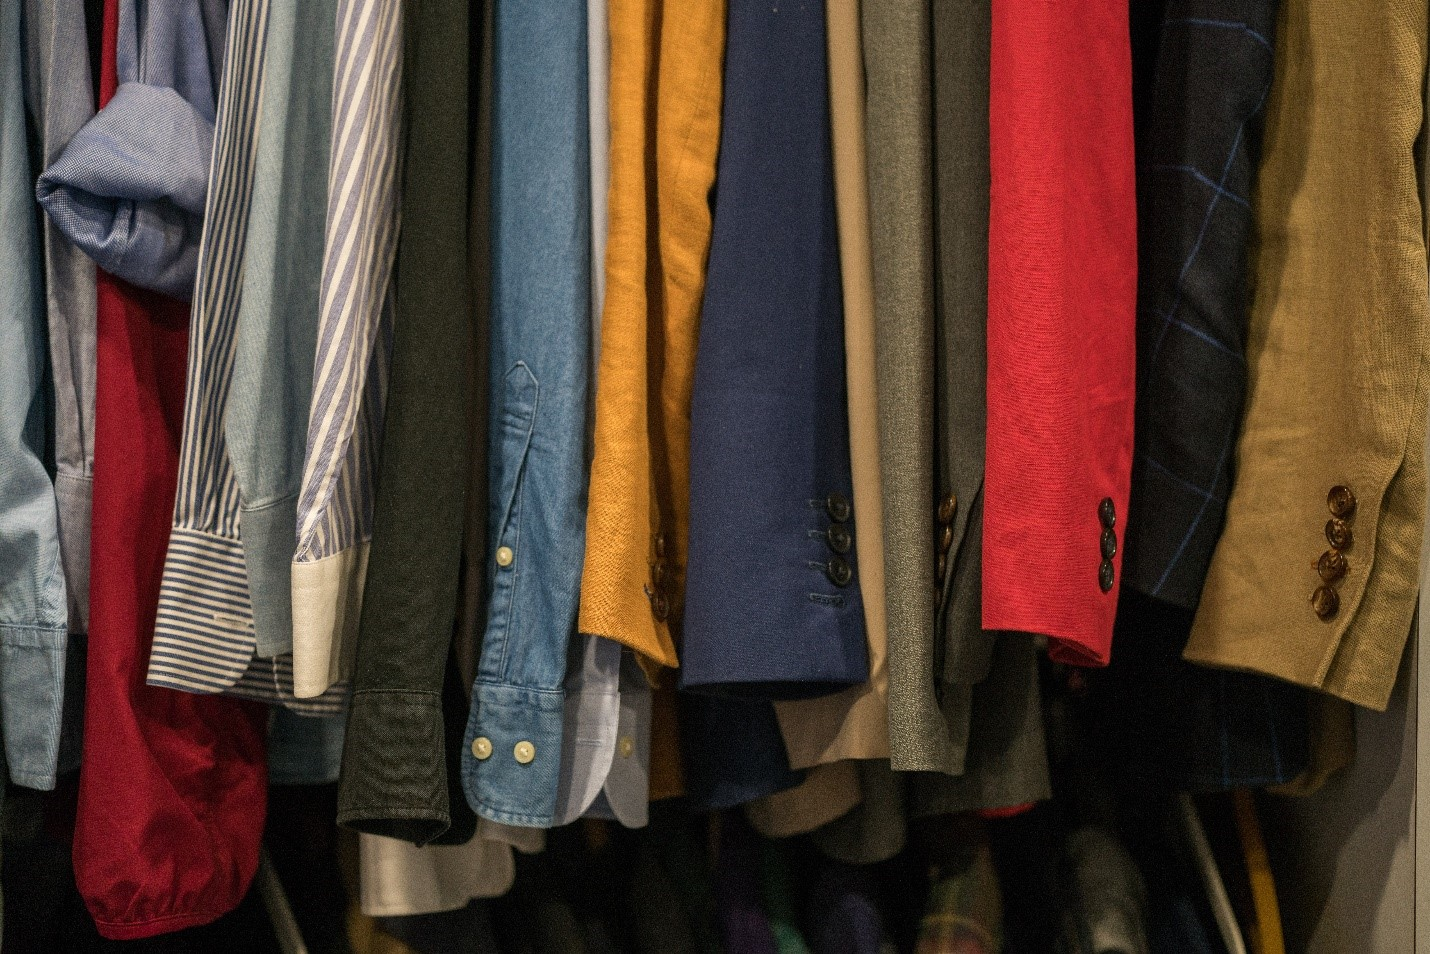 Donate Old Clothing to Reduce Solid Waste in Your Community